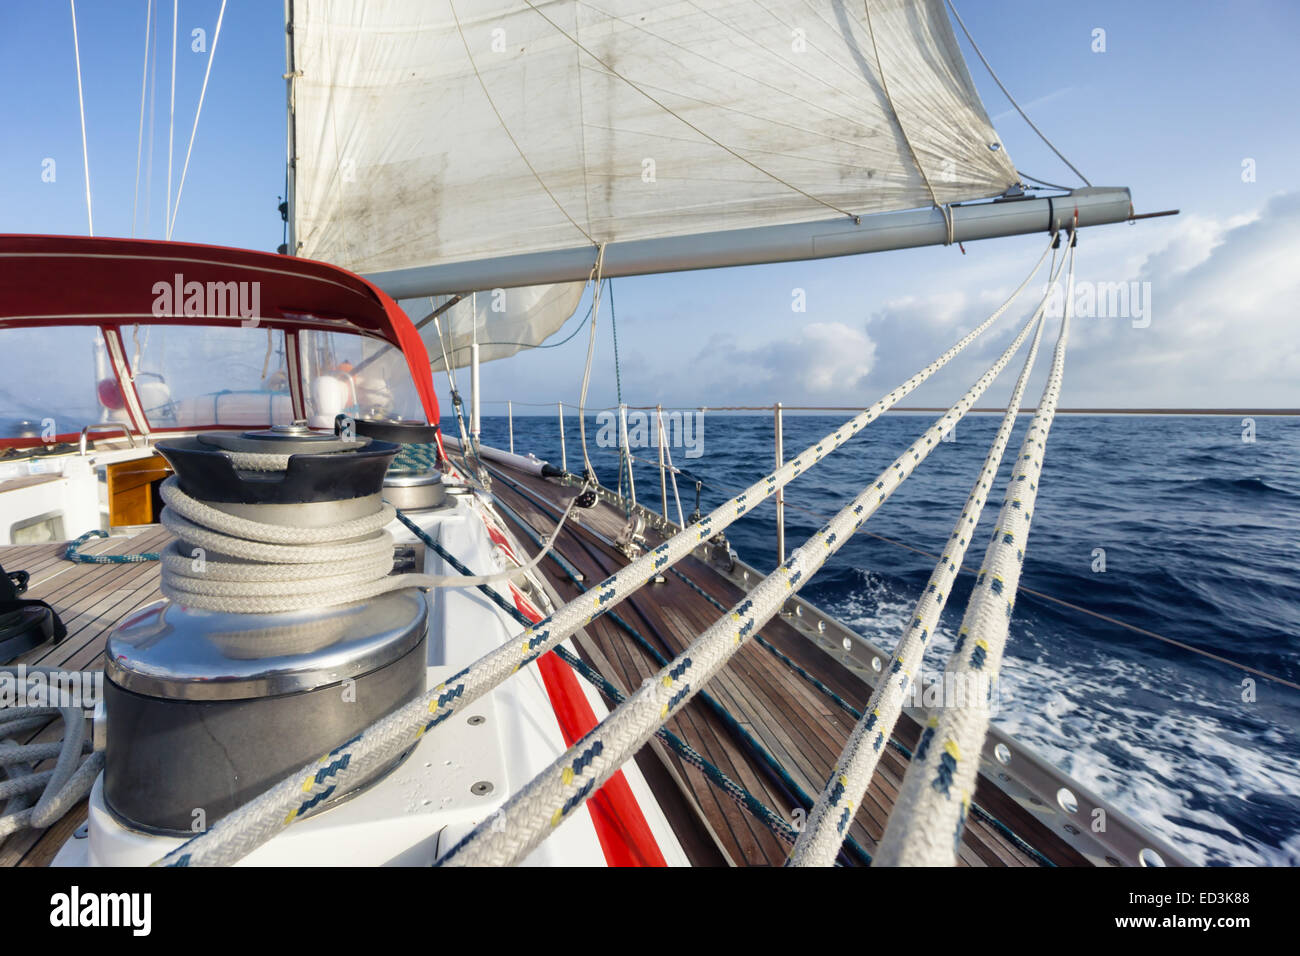 rope on sail boat in navigation - Stock Image